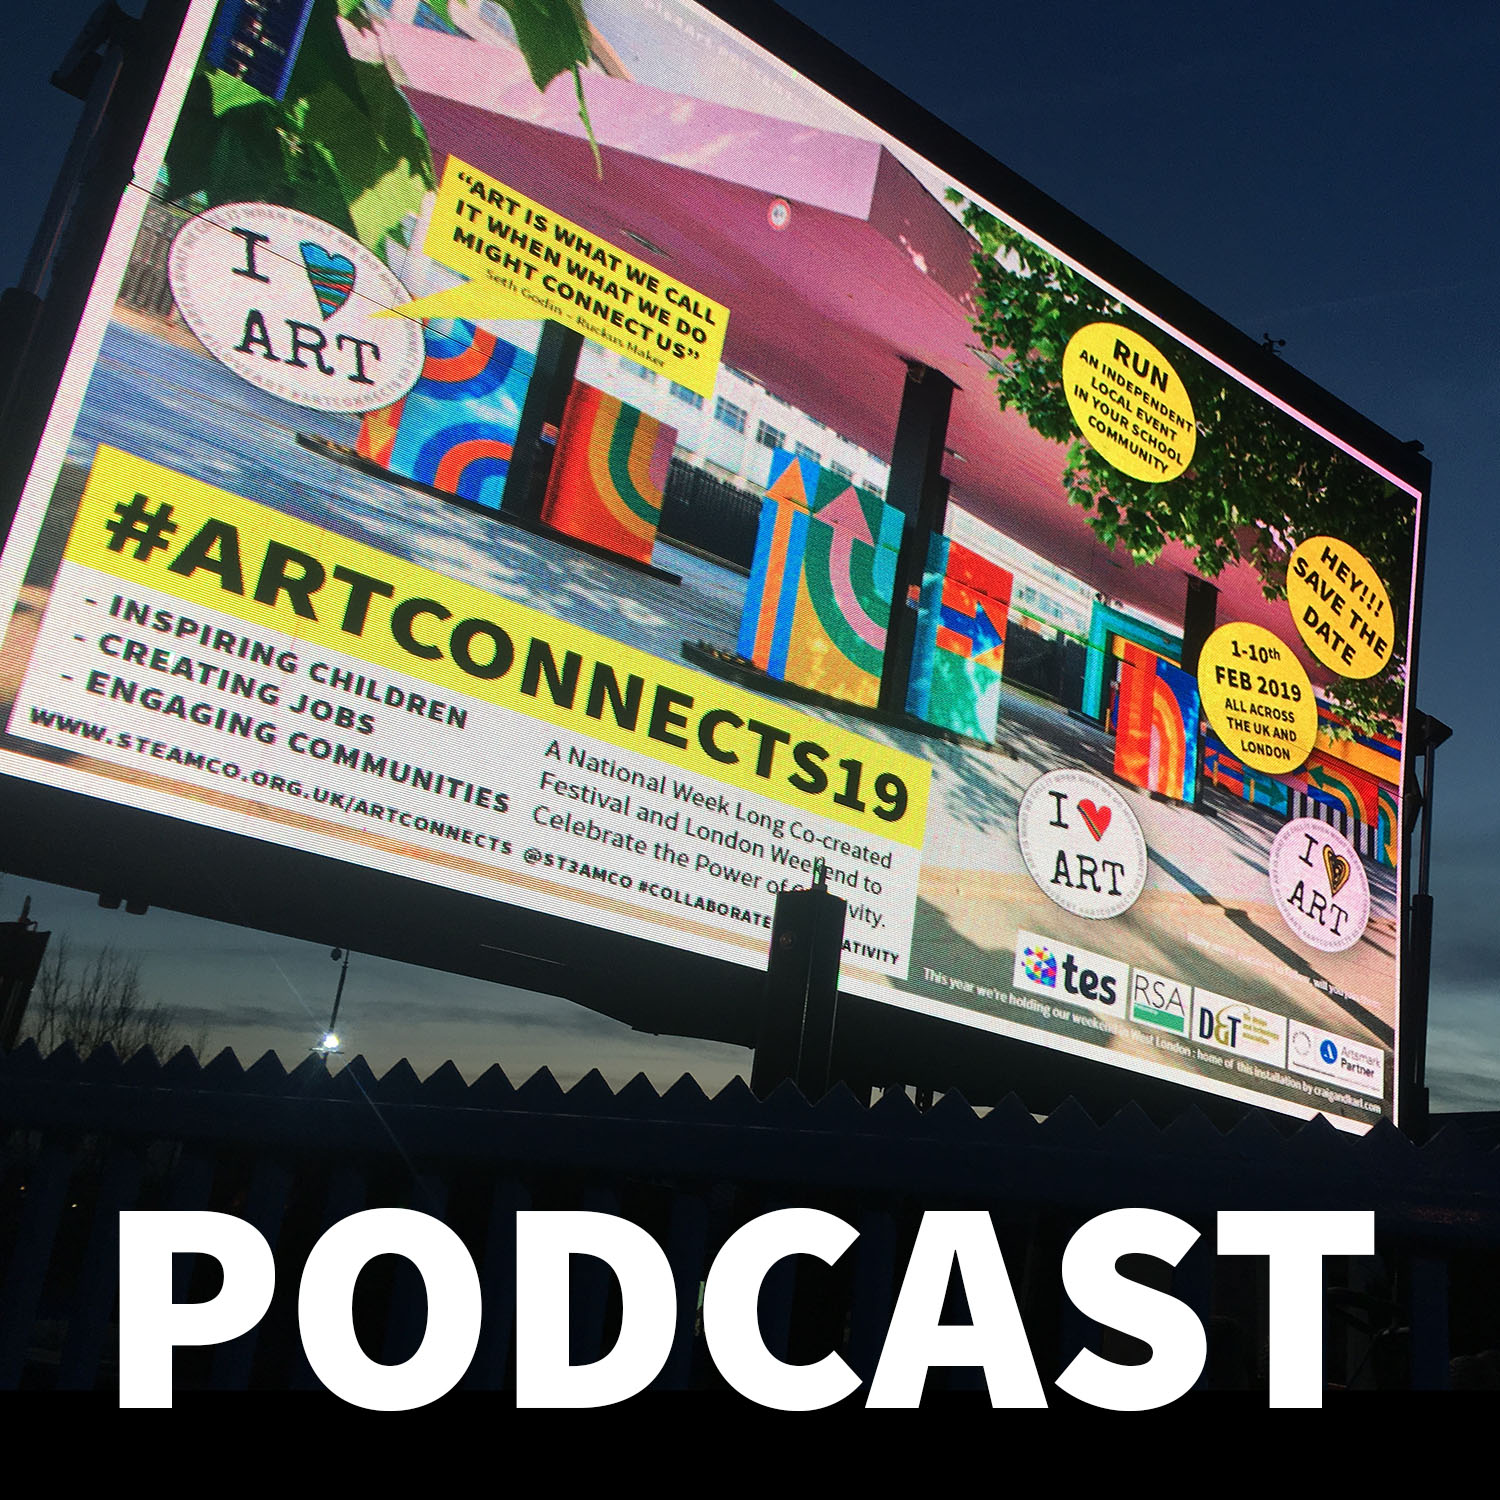 ARTCONNECTS19 Podcast image.jpg